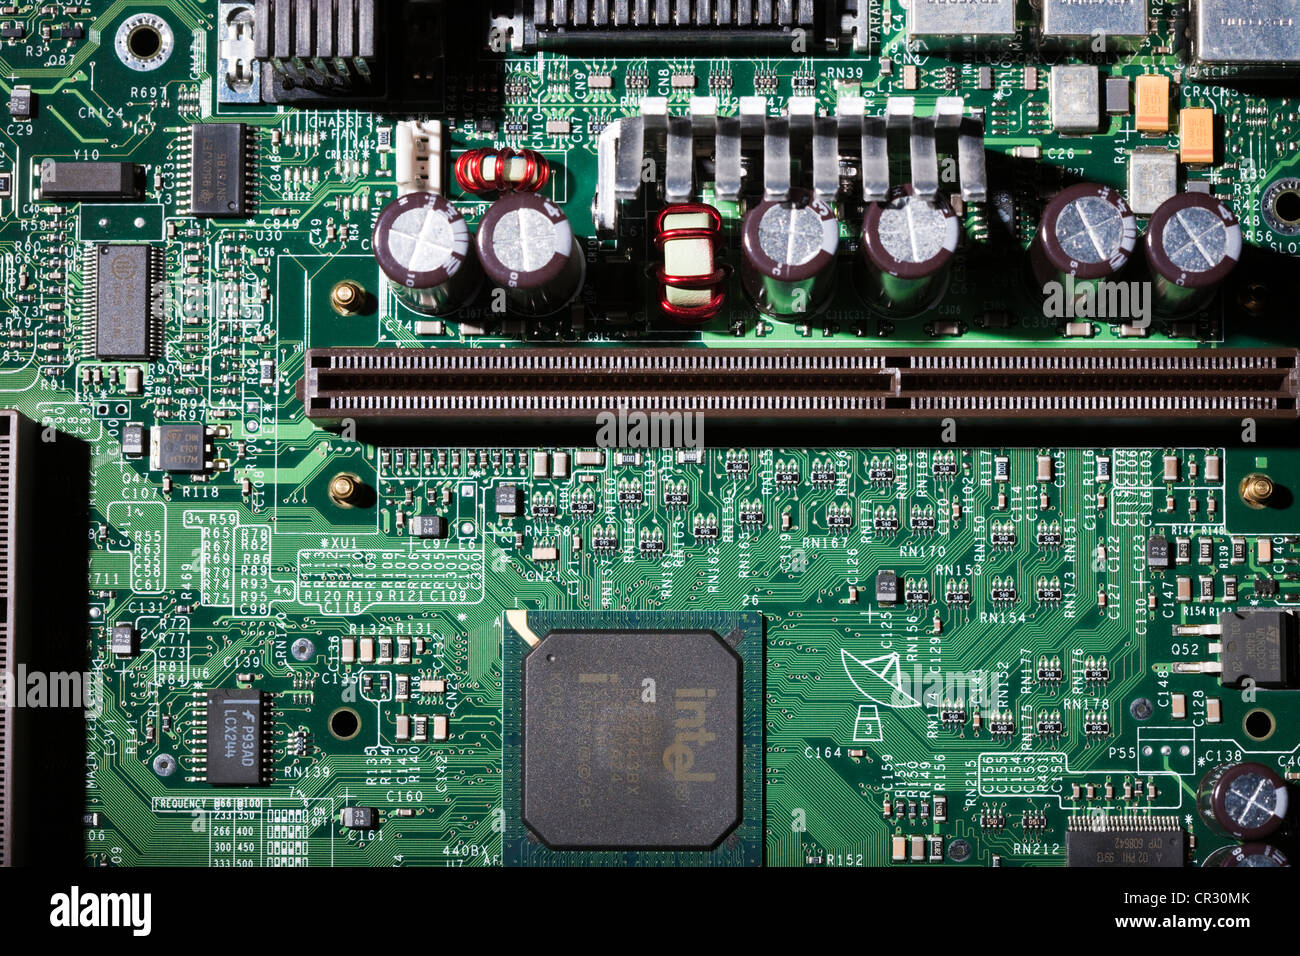 Electronics Printed Circuit Board Image Visual Dictionary Online